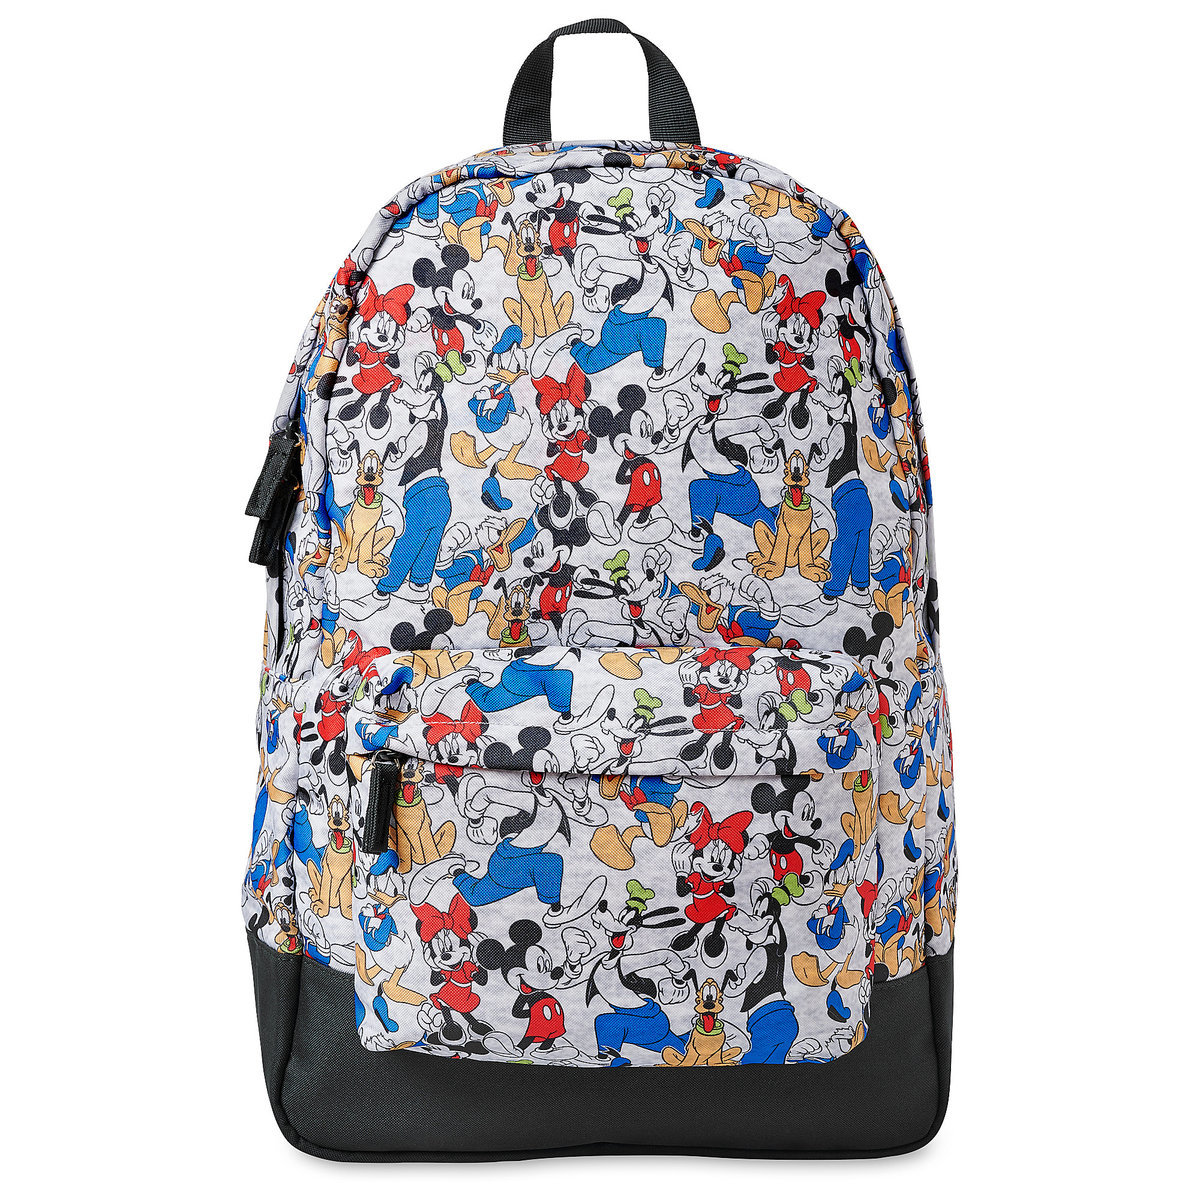 78b0caff6e9 Product Image of Mickey Mouse and Friends Backpack   1